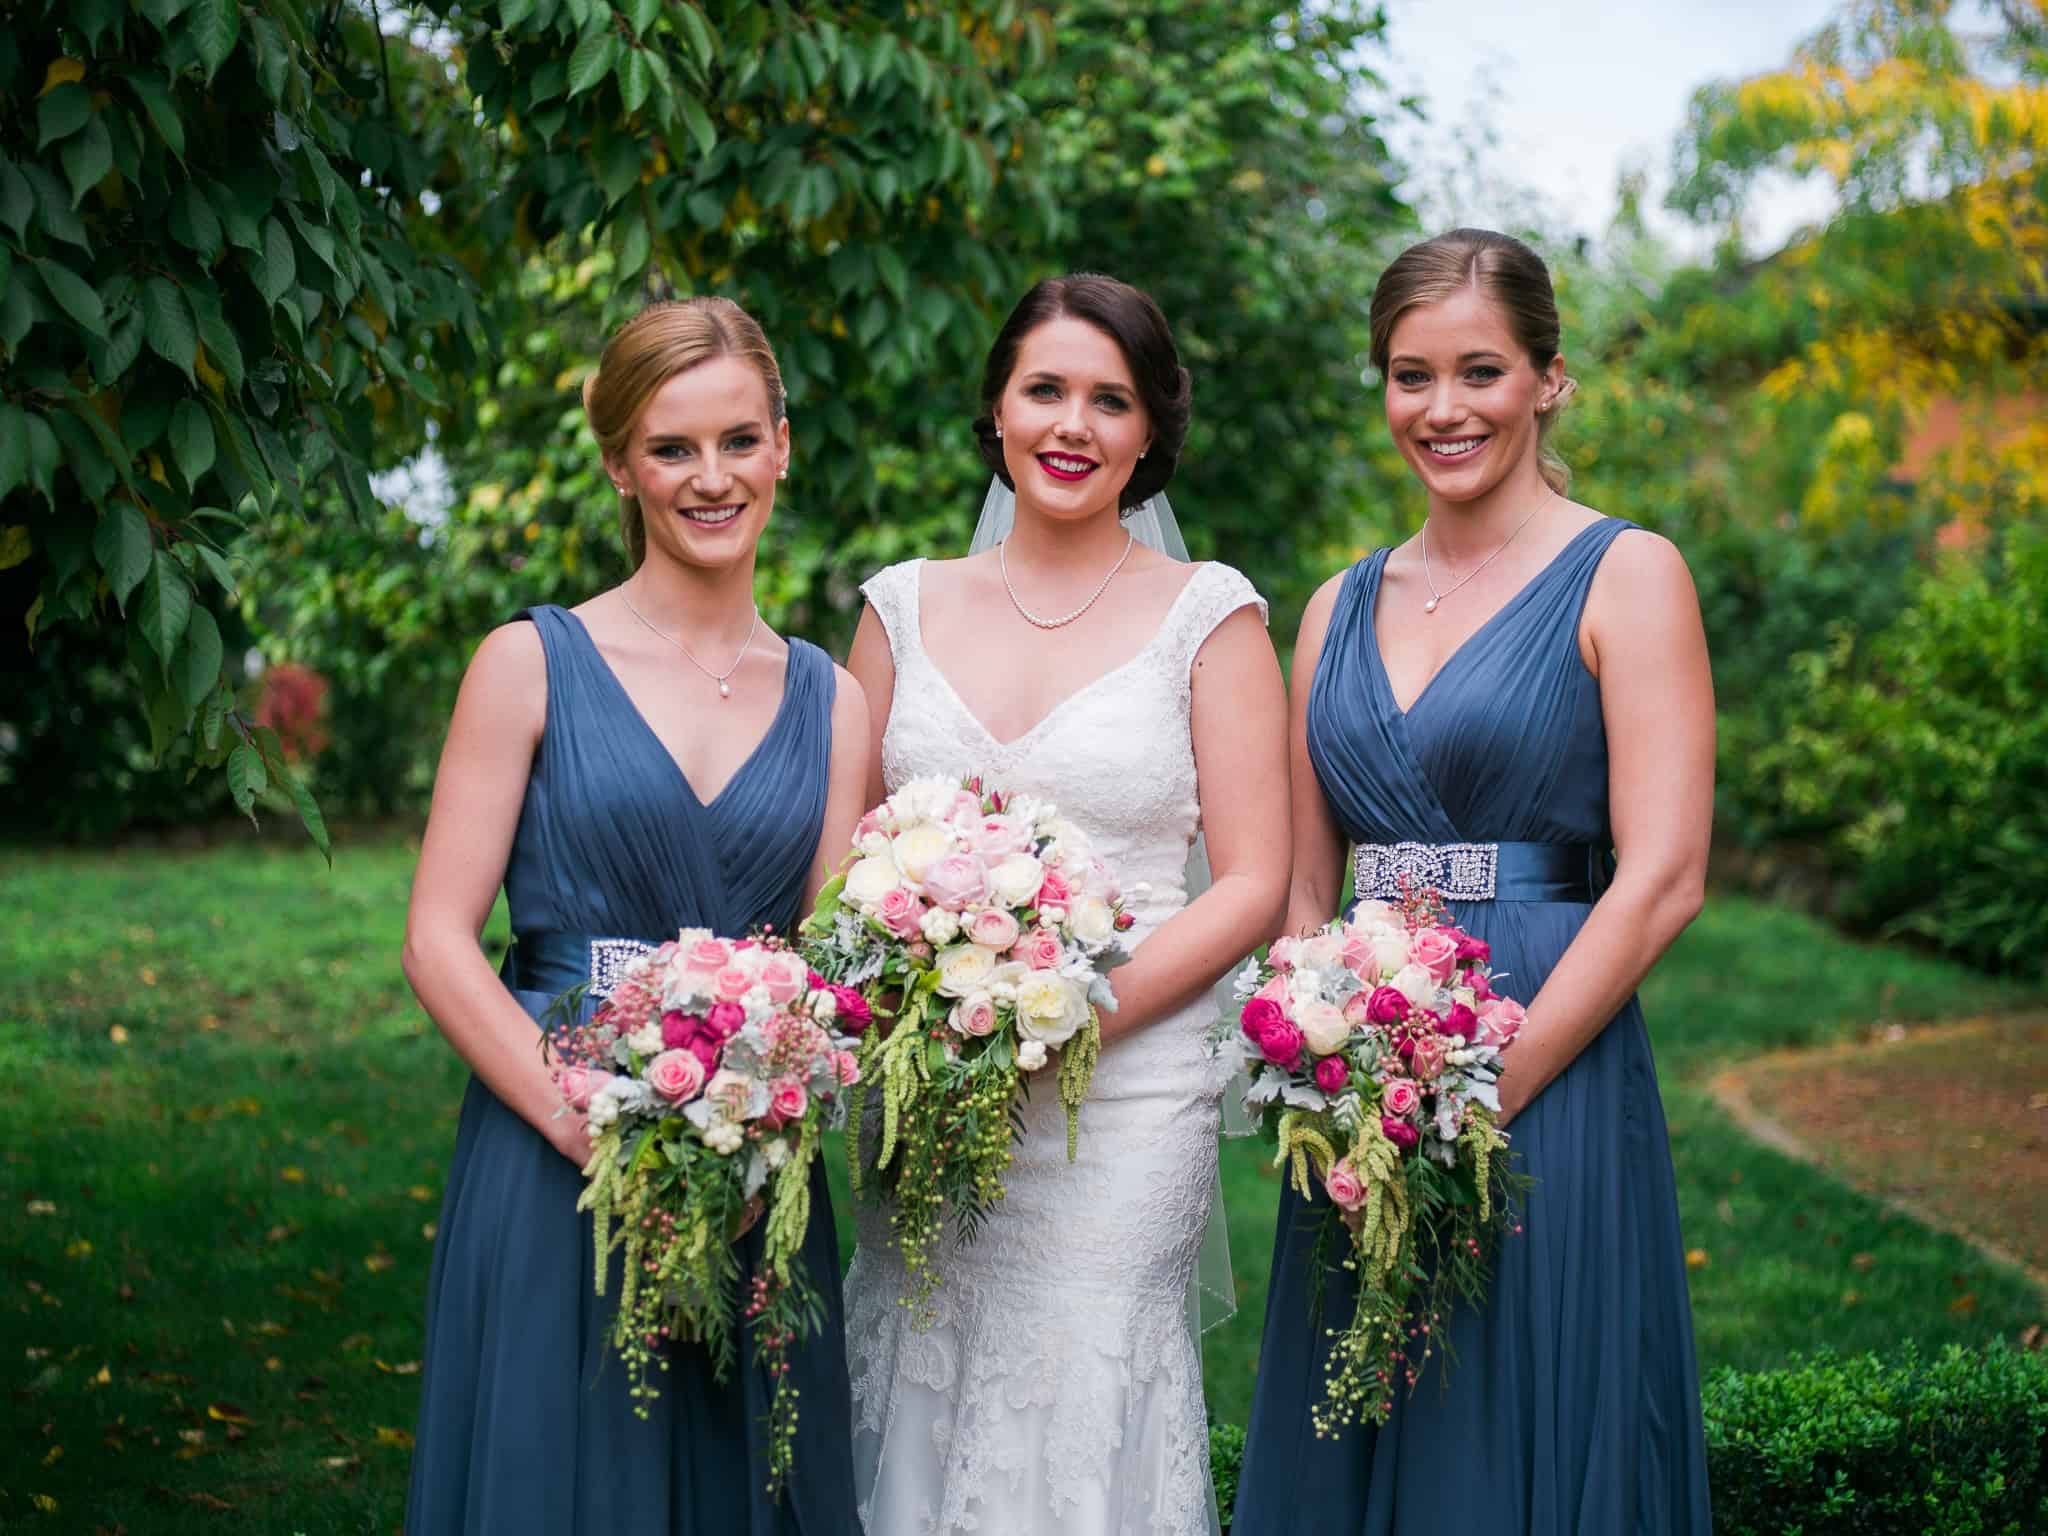 Bowral makeup artist, wedding hair bowral, southern highlands makeup artist, berry makeup artist, kangaroo valley makeup artist